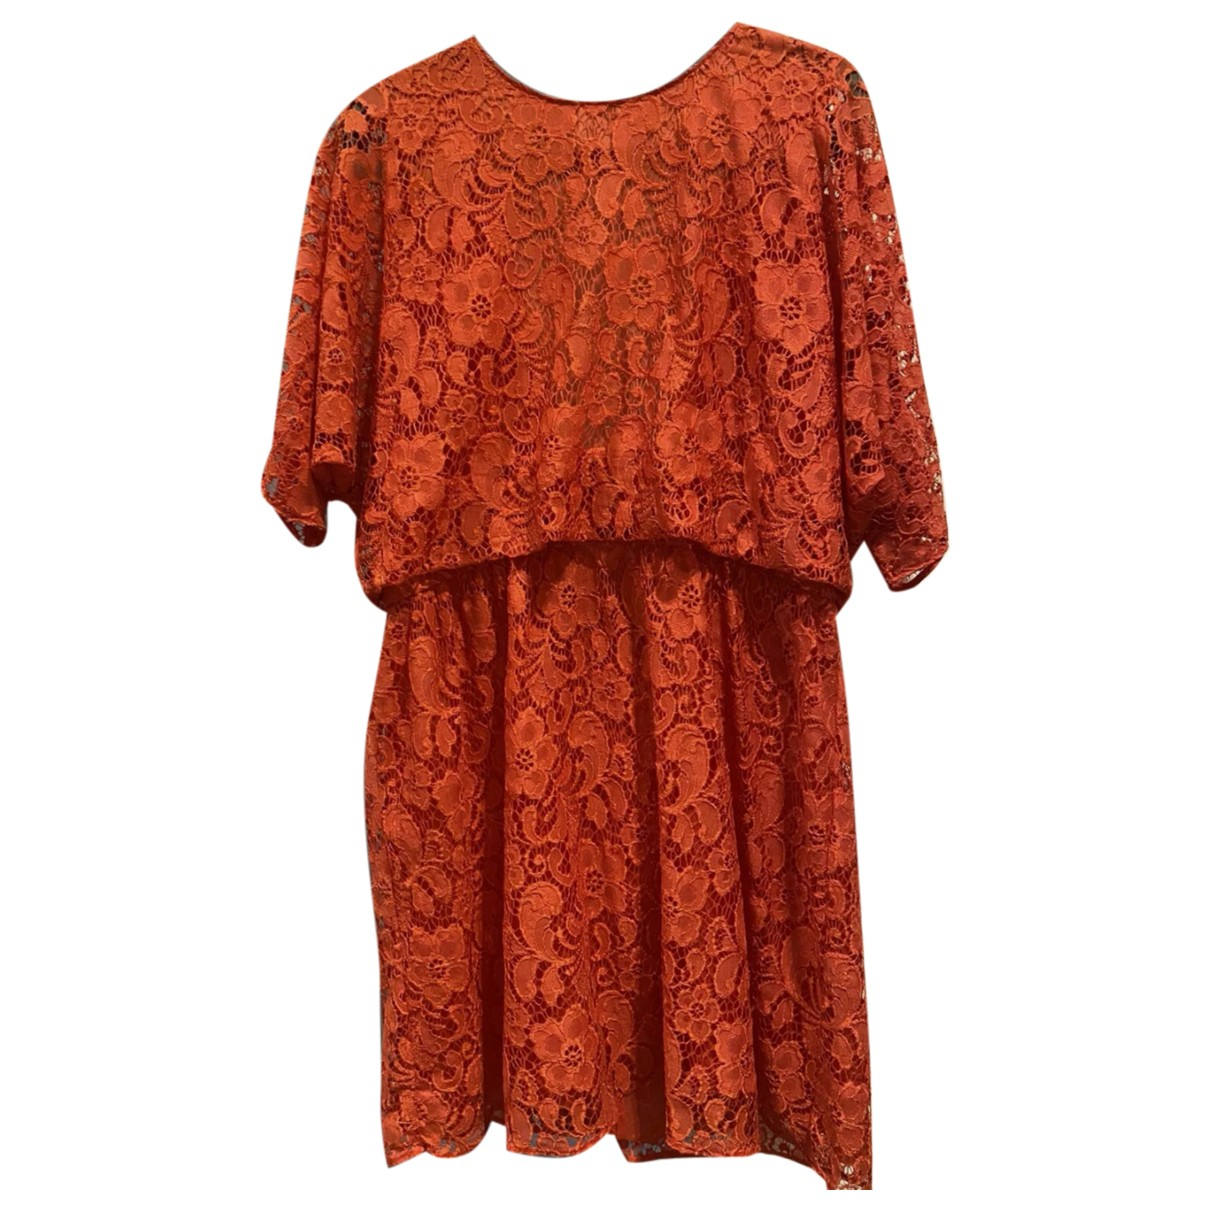 Moschino Cheap And Chic N Lace dress for Women 14 UK